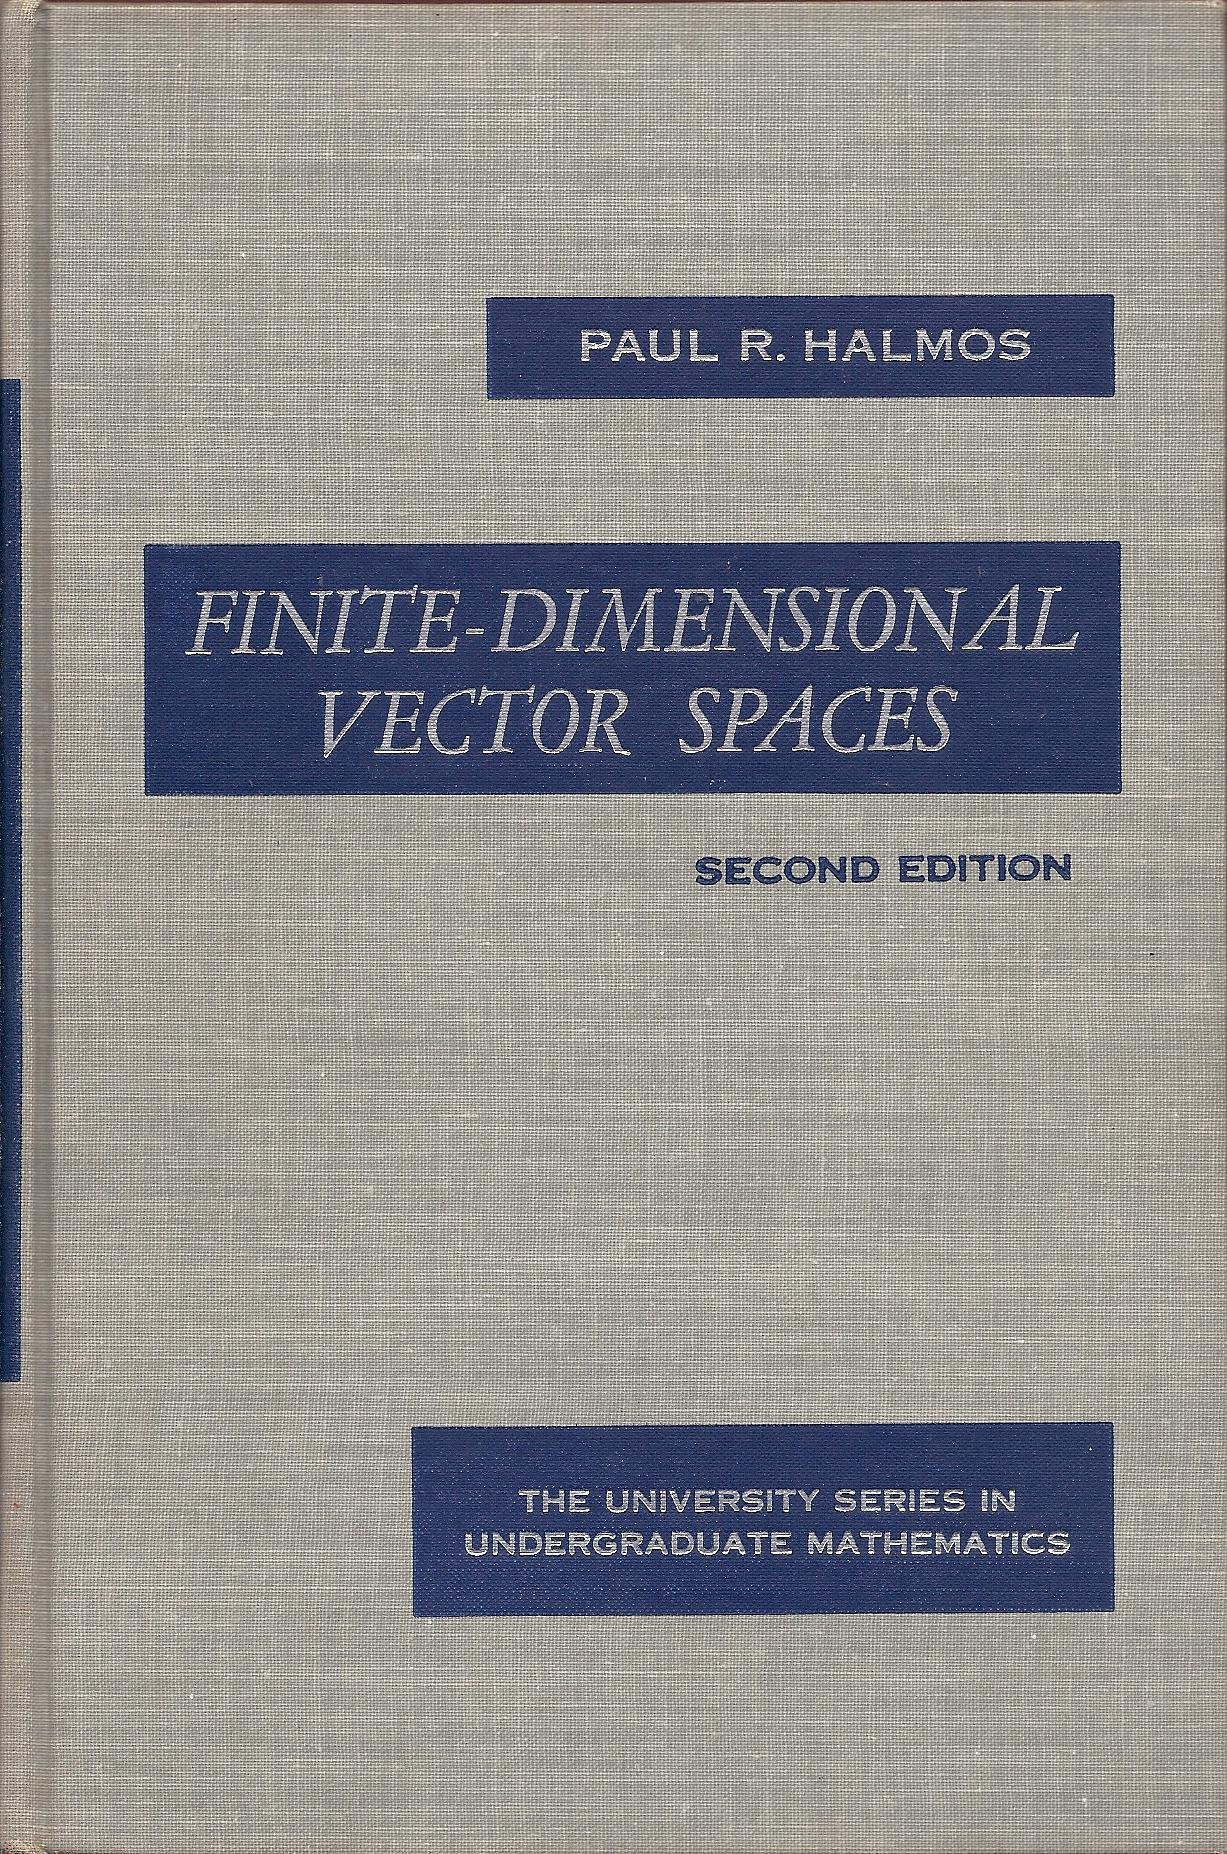 Finite-dimensional vector spaces (The University series in undergraduate mathematics)